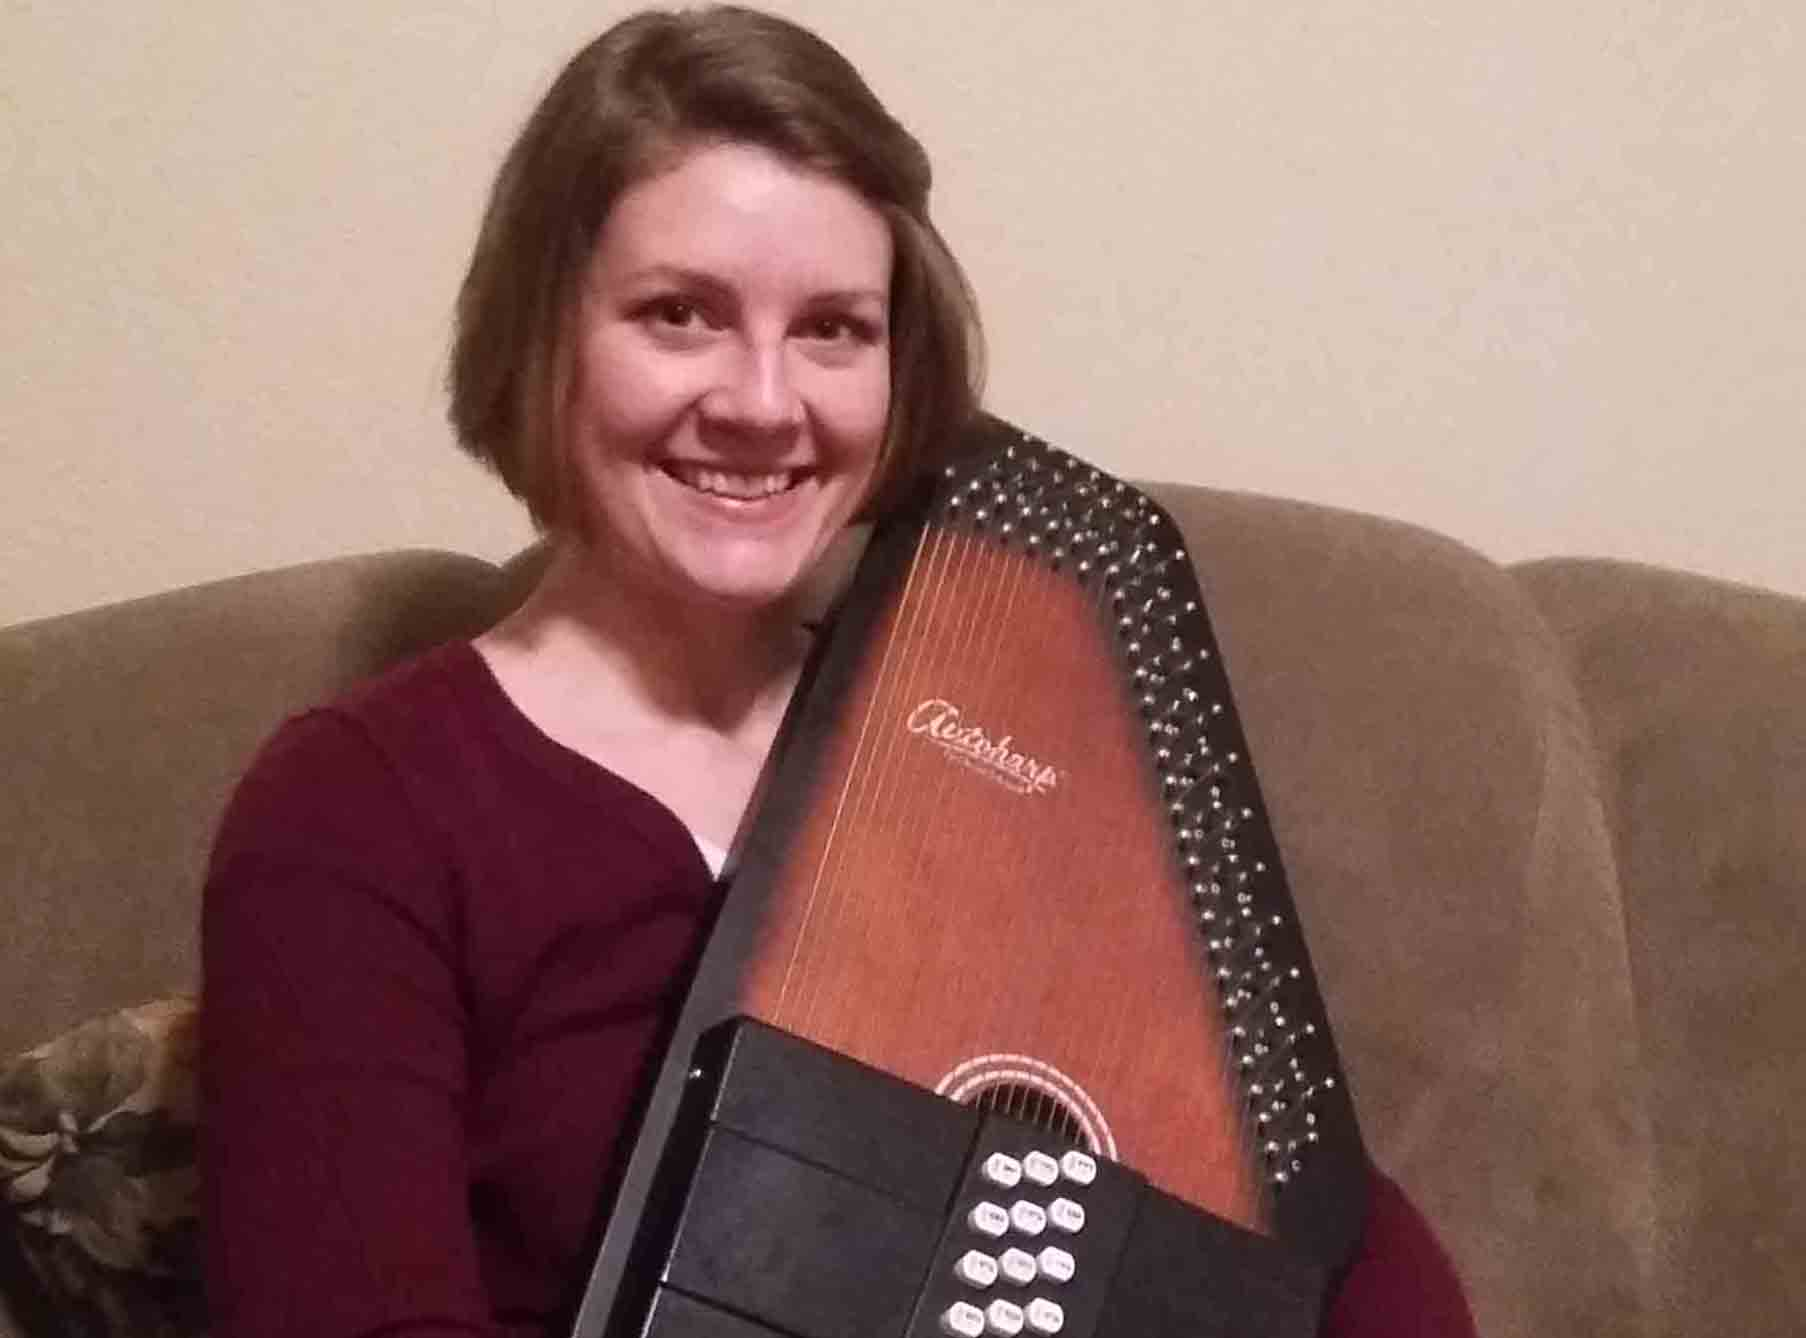 YSA Musician Shines With Unusual Instrument